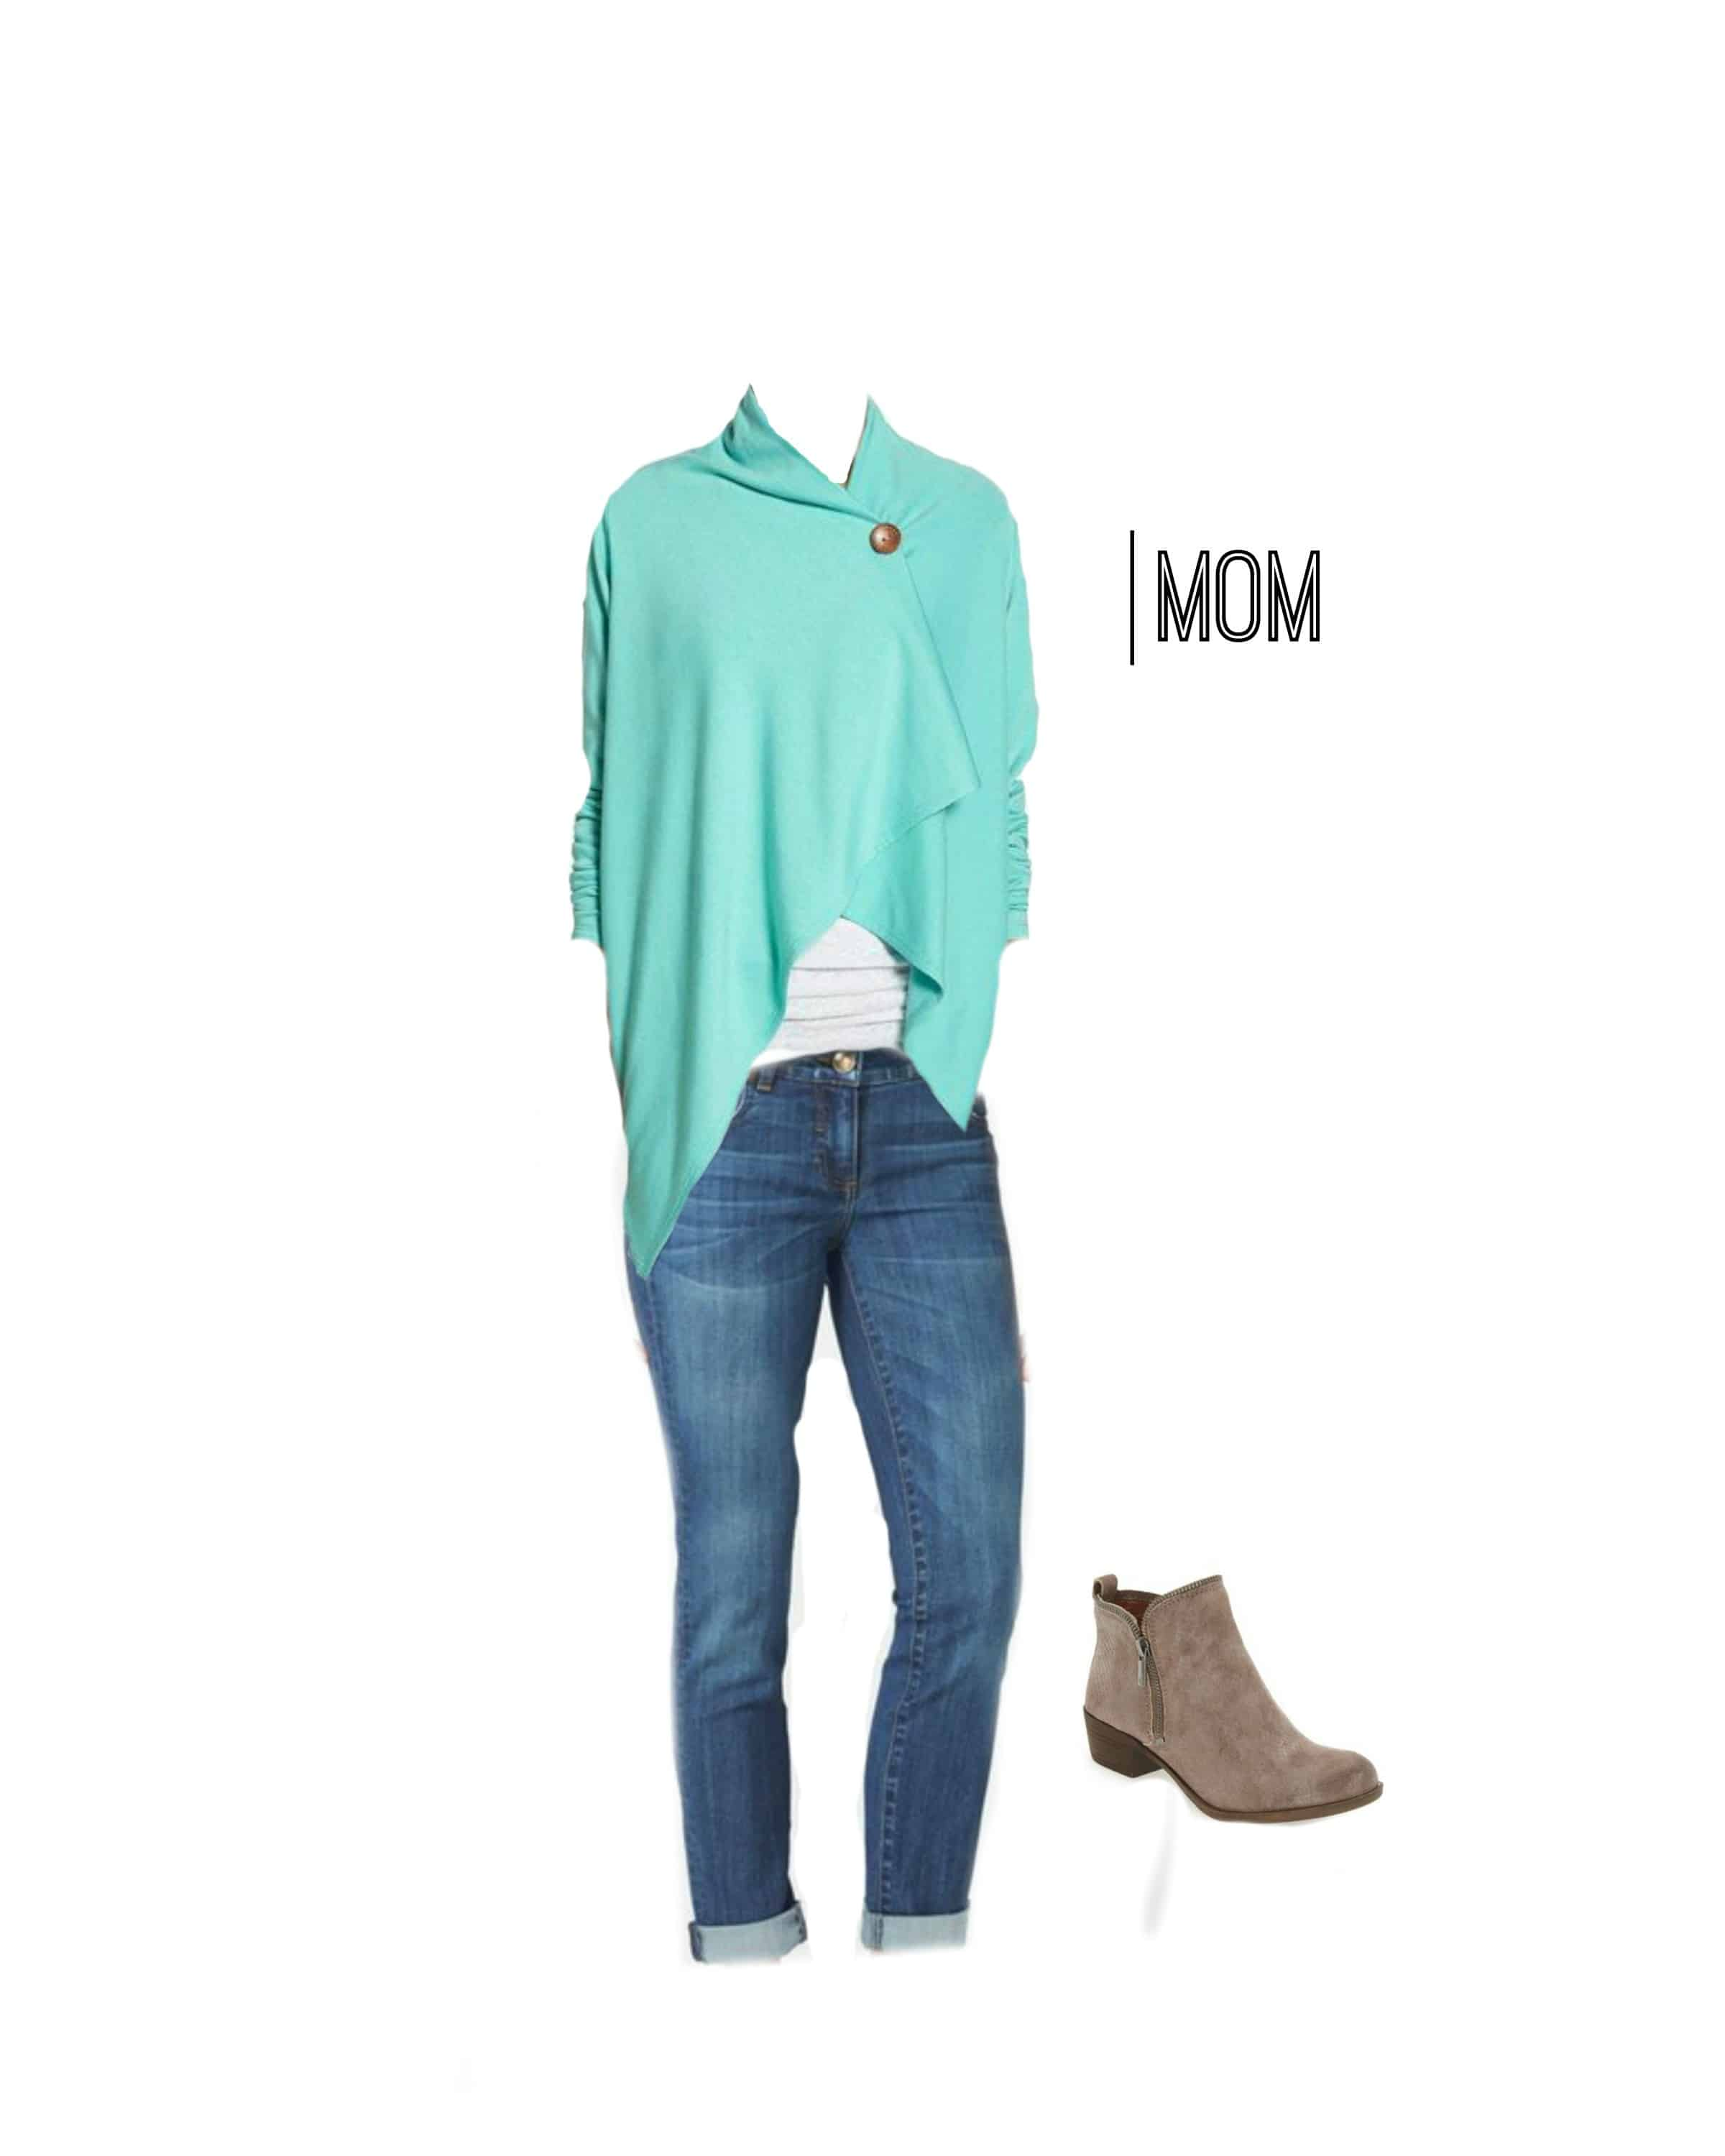 A fantastic outfit for Mom to wear for Fall family photos!